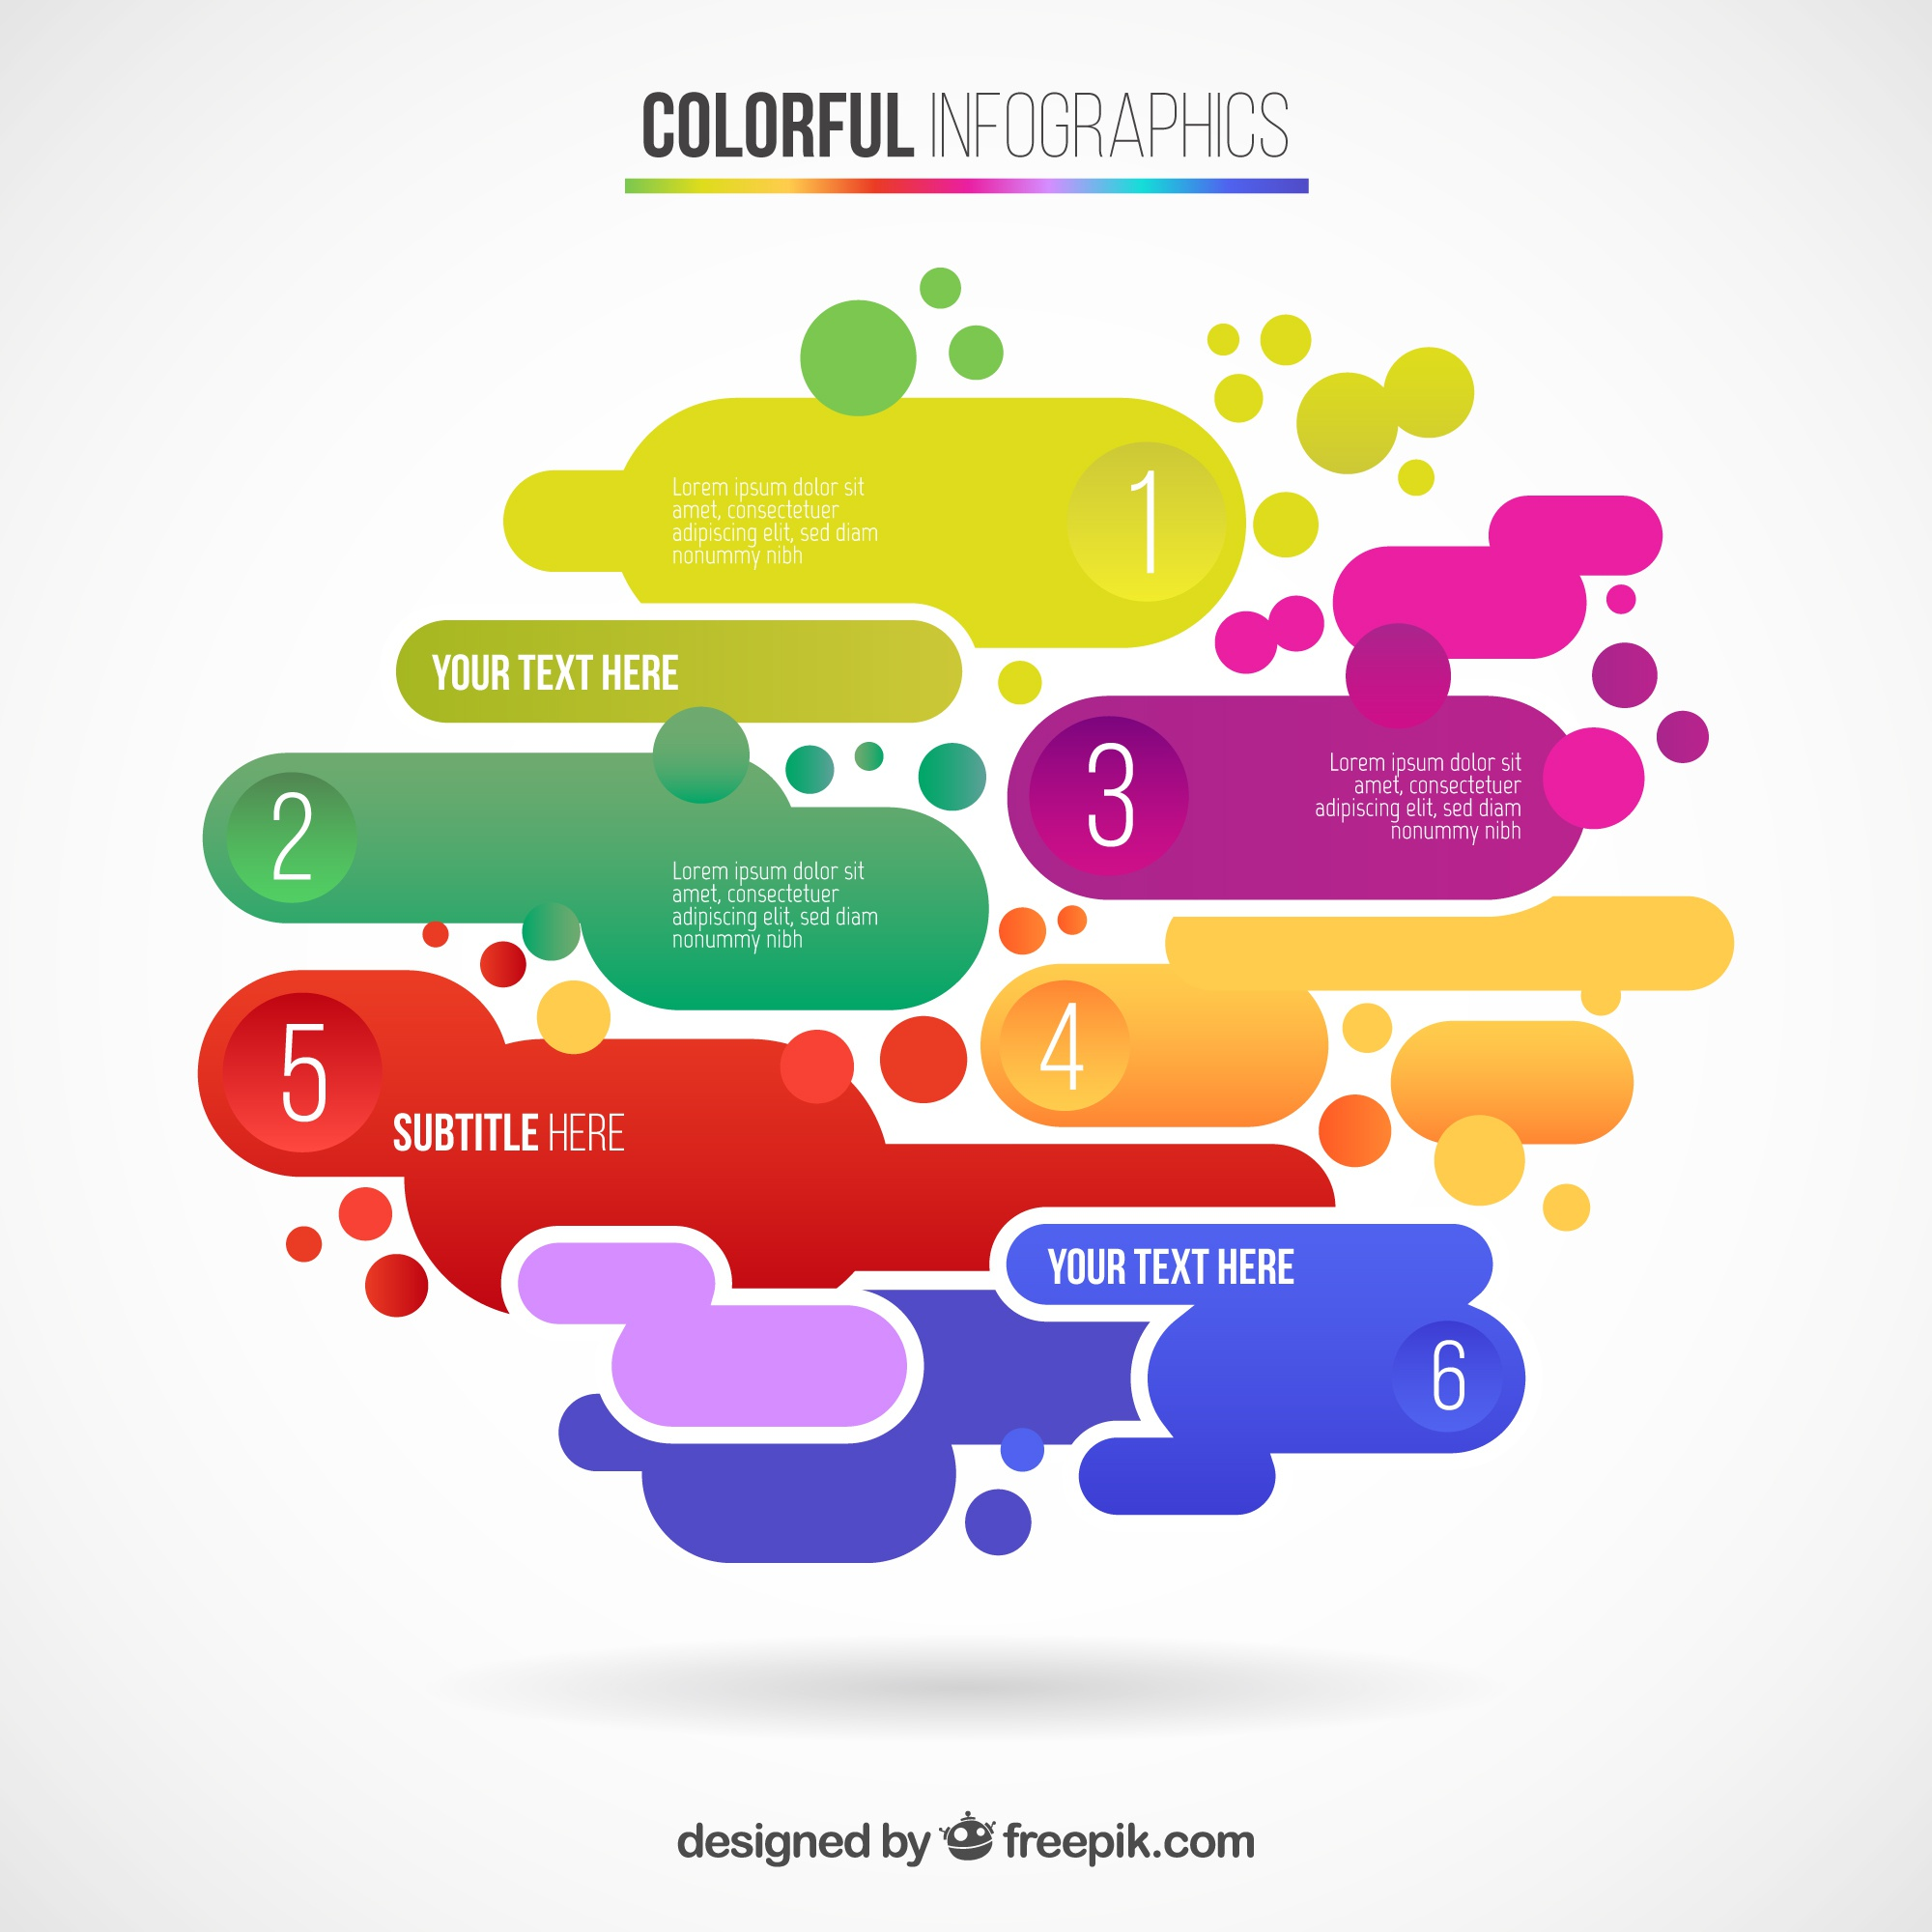 Abstract infographic in colorful style